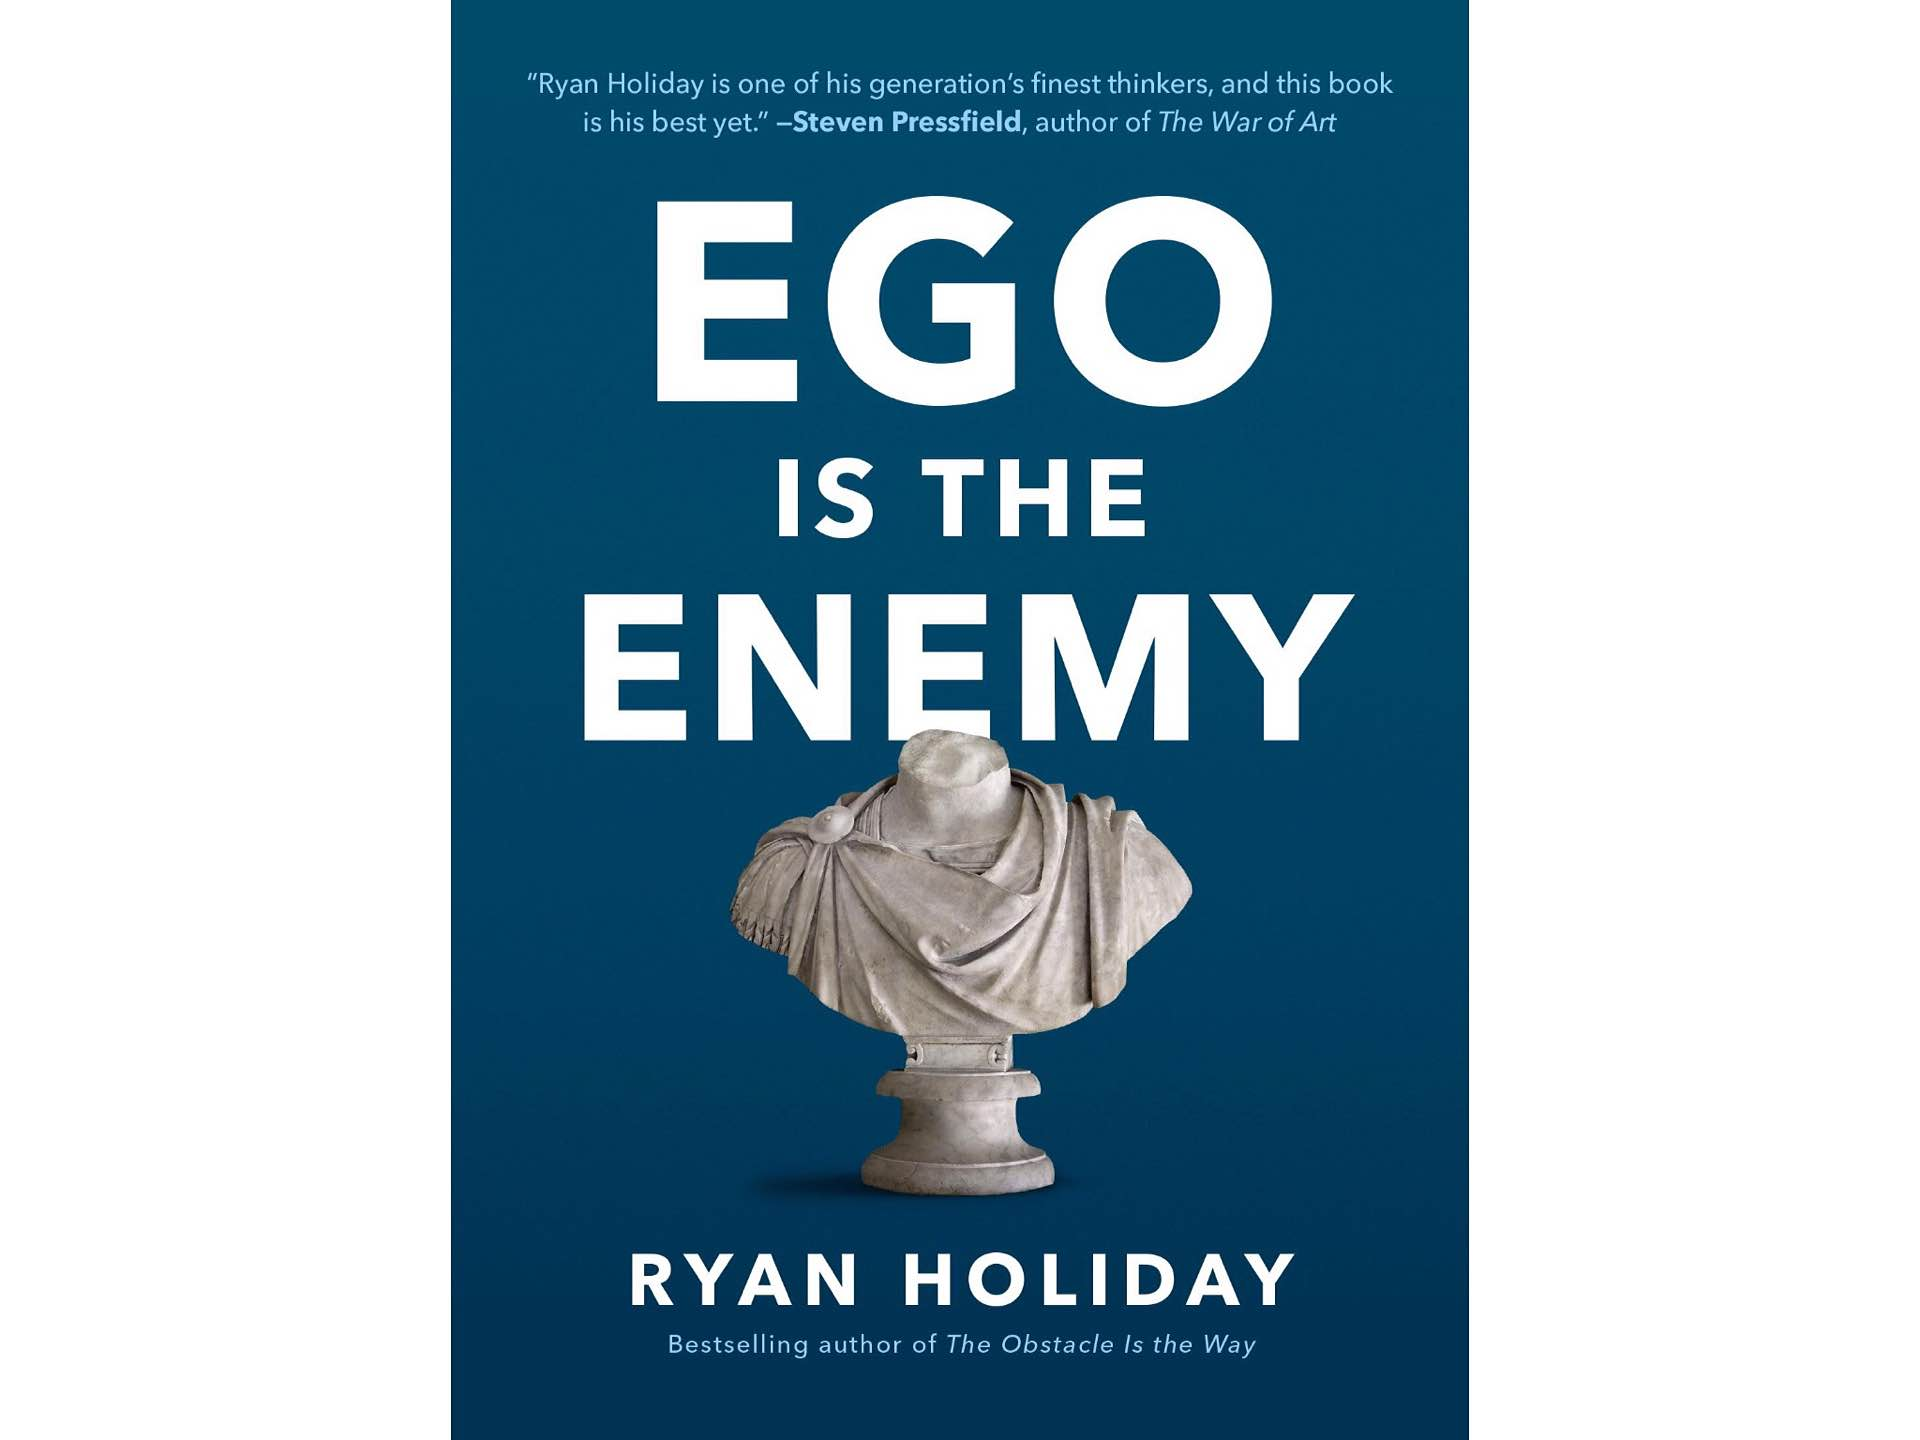 ego-is-the-enemy-by-ryan-holiday